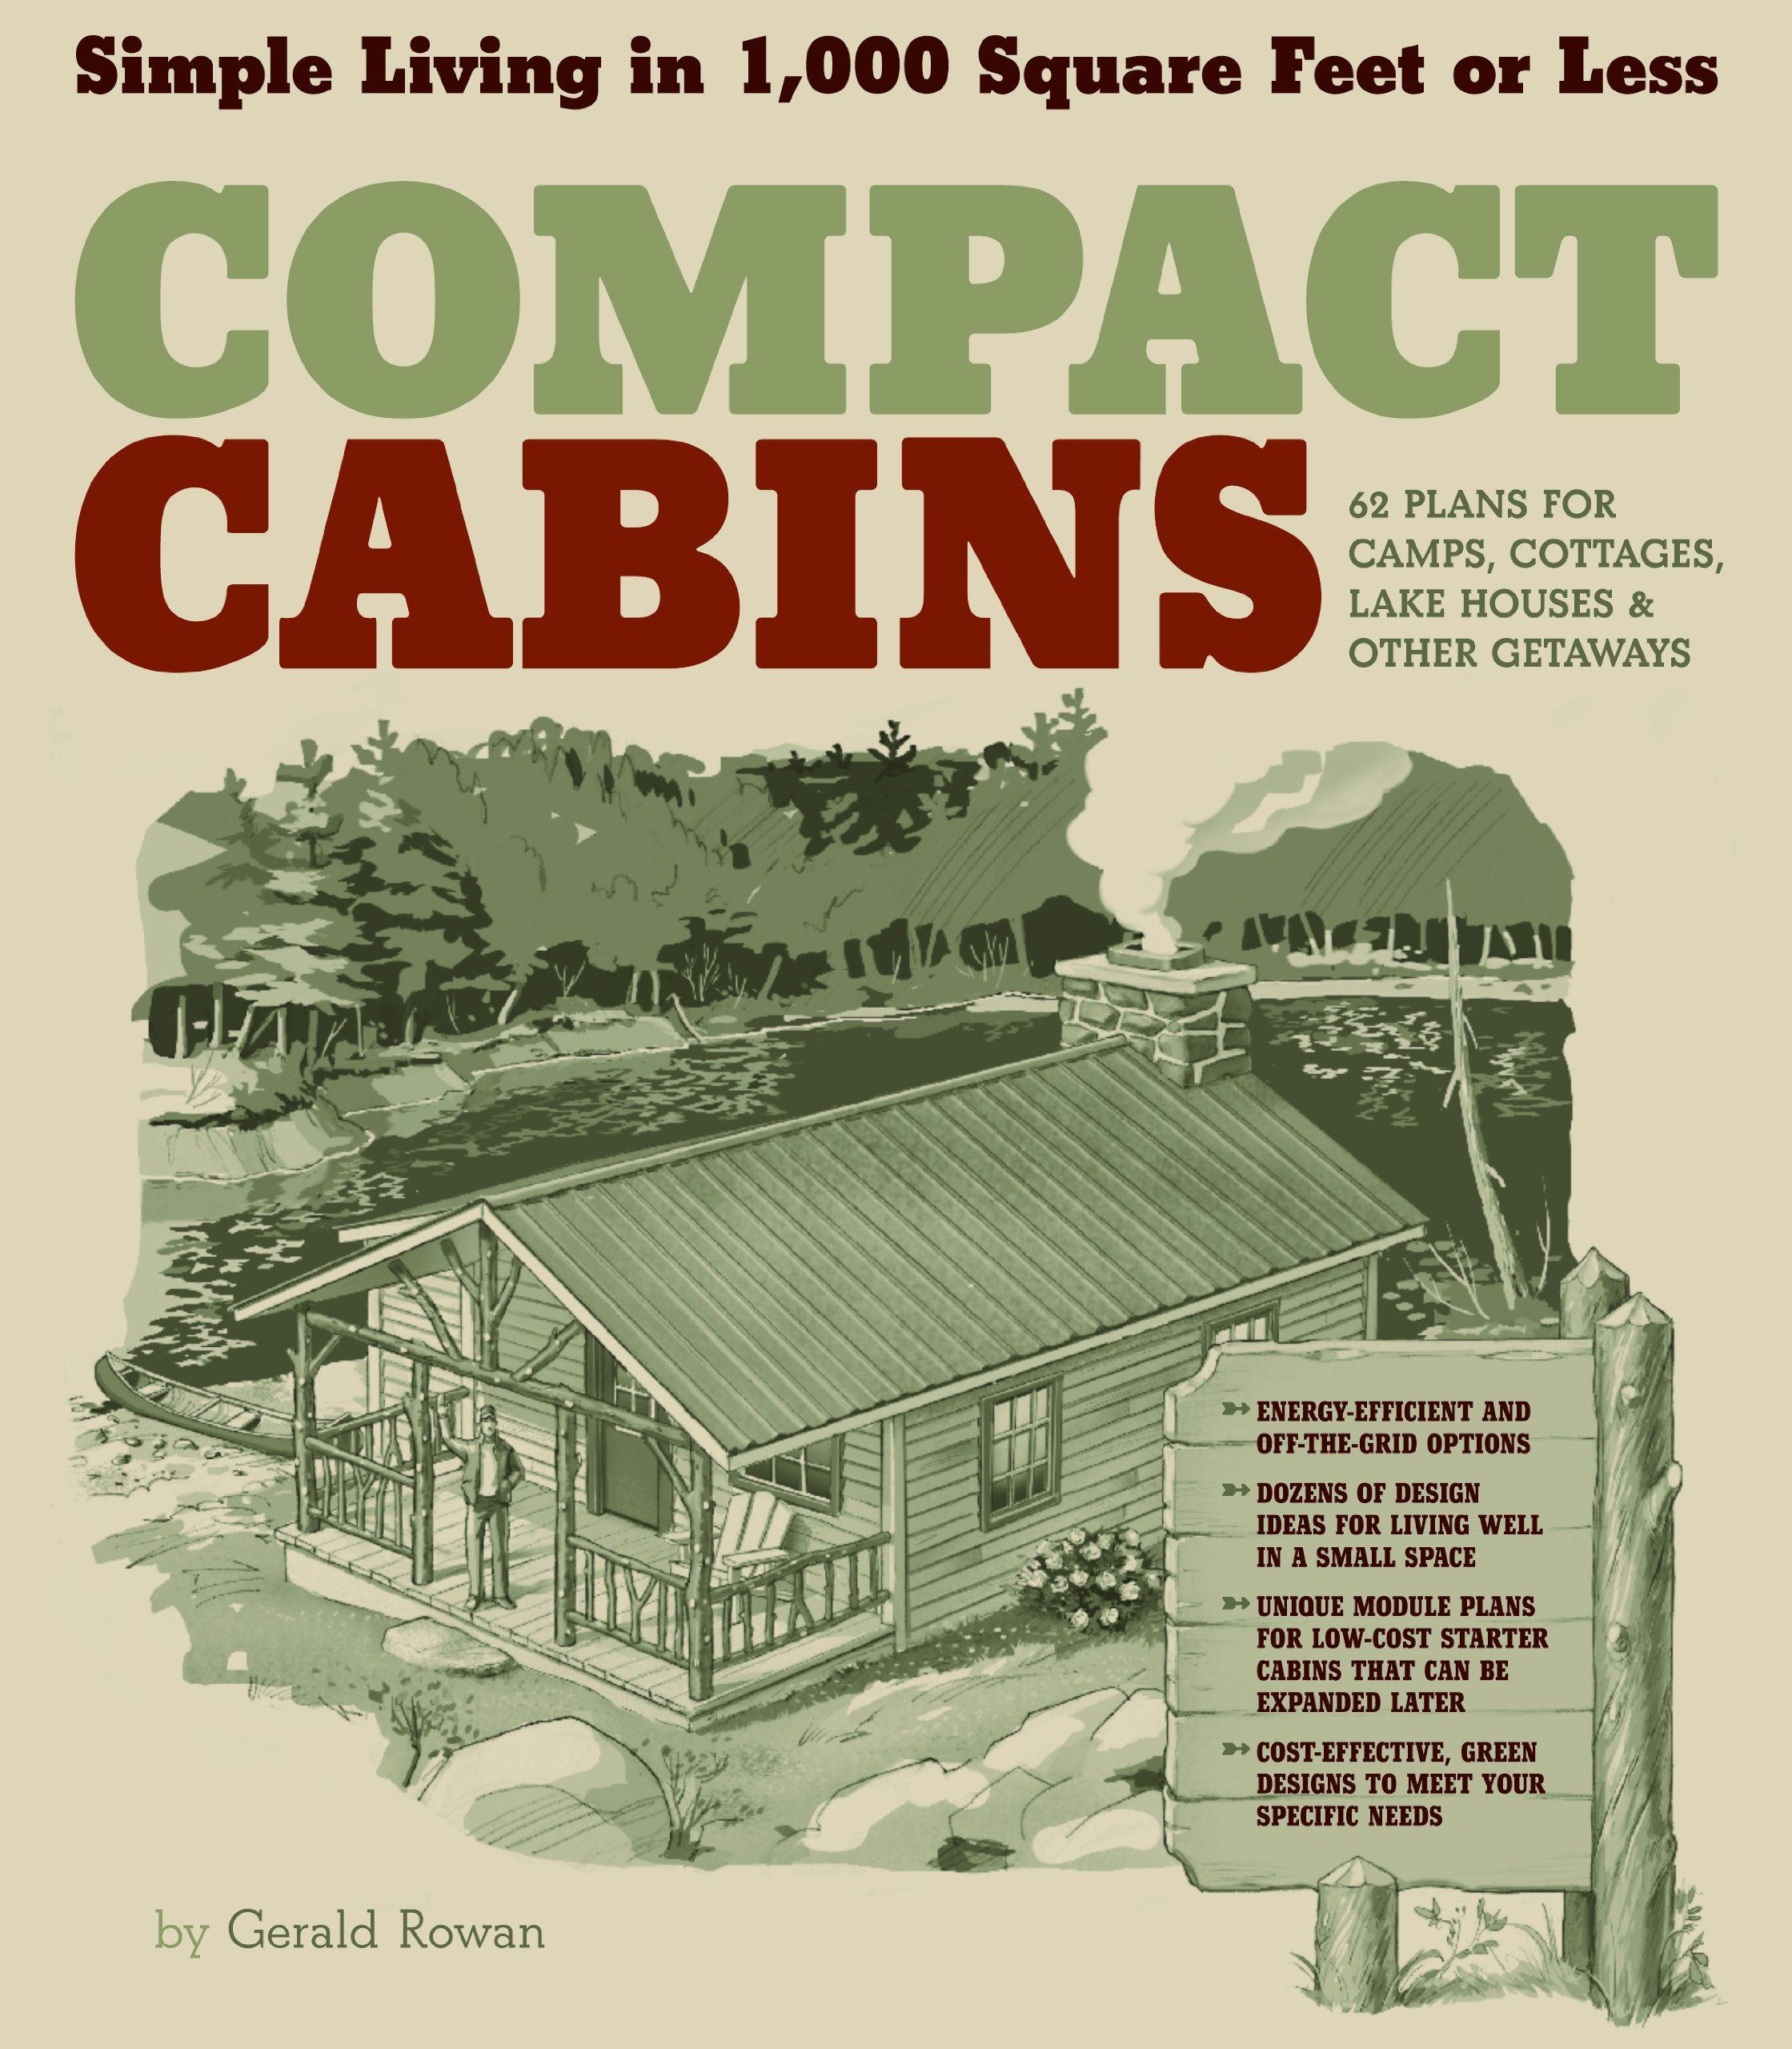 compact cabins simple living in 1000 square feet or less by gerald rowan used - Cottages For Less